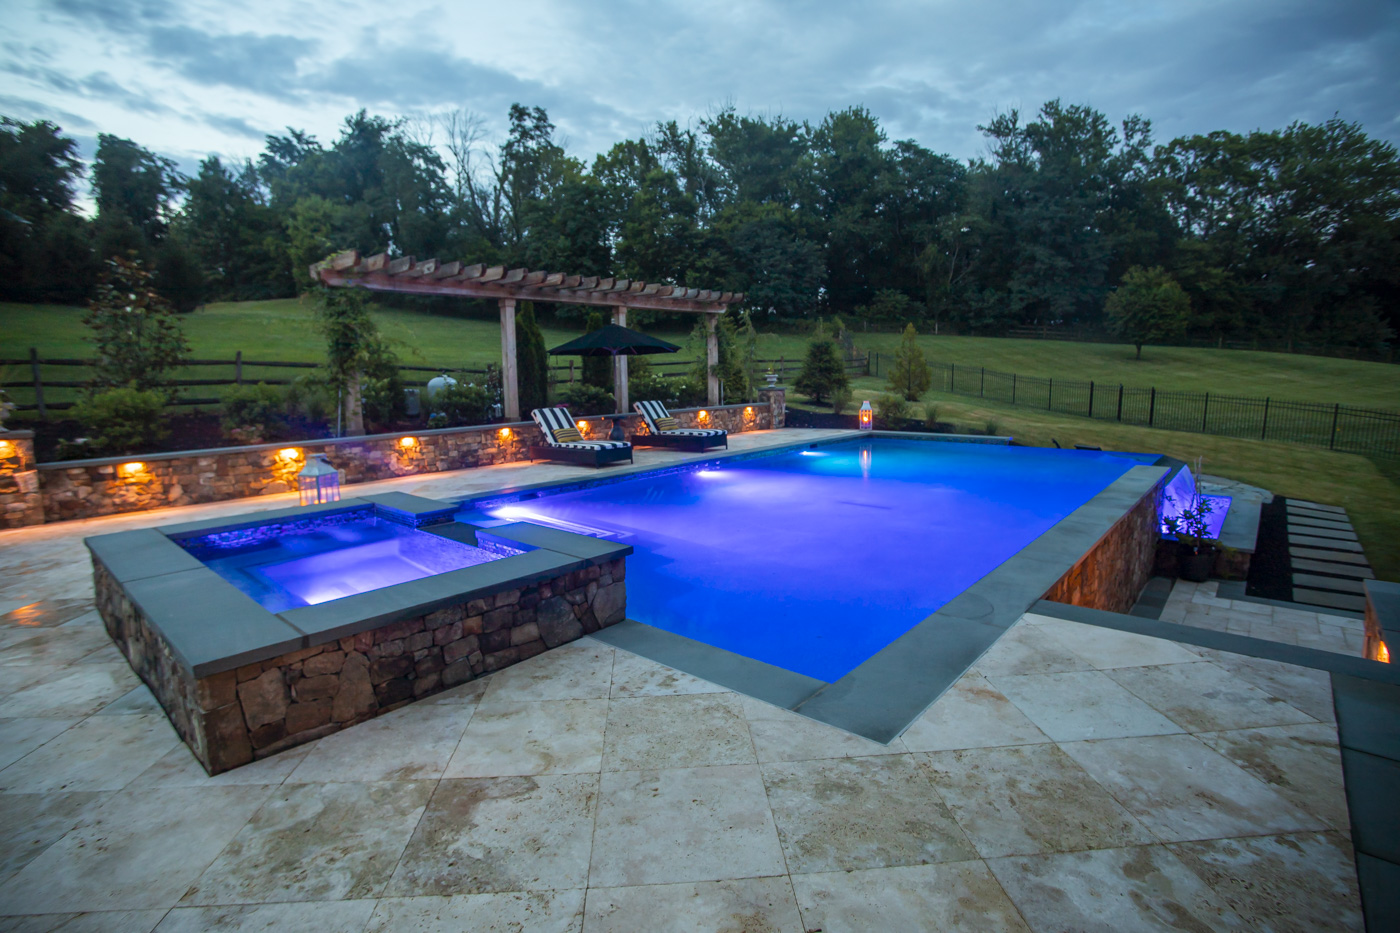 6 Amazing Add-Ons for Your Swimming Pool in Great Falls, Ashburn, or Leesburg, VA